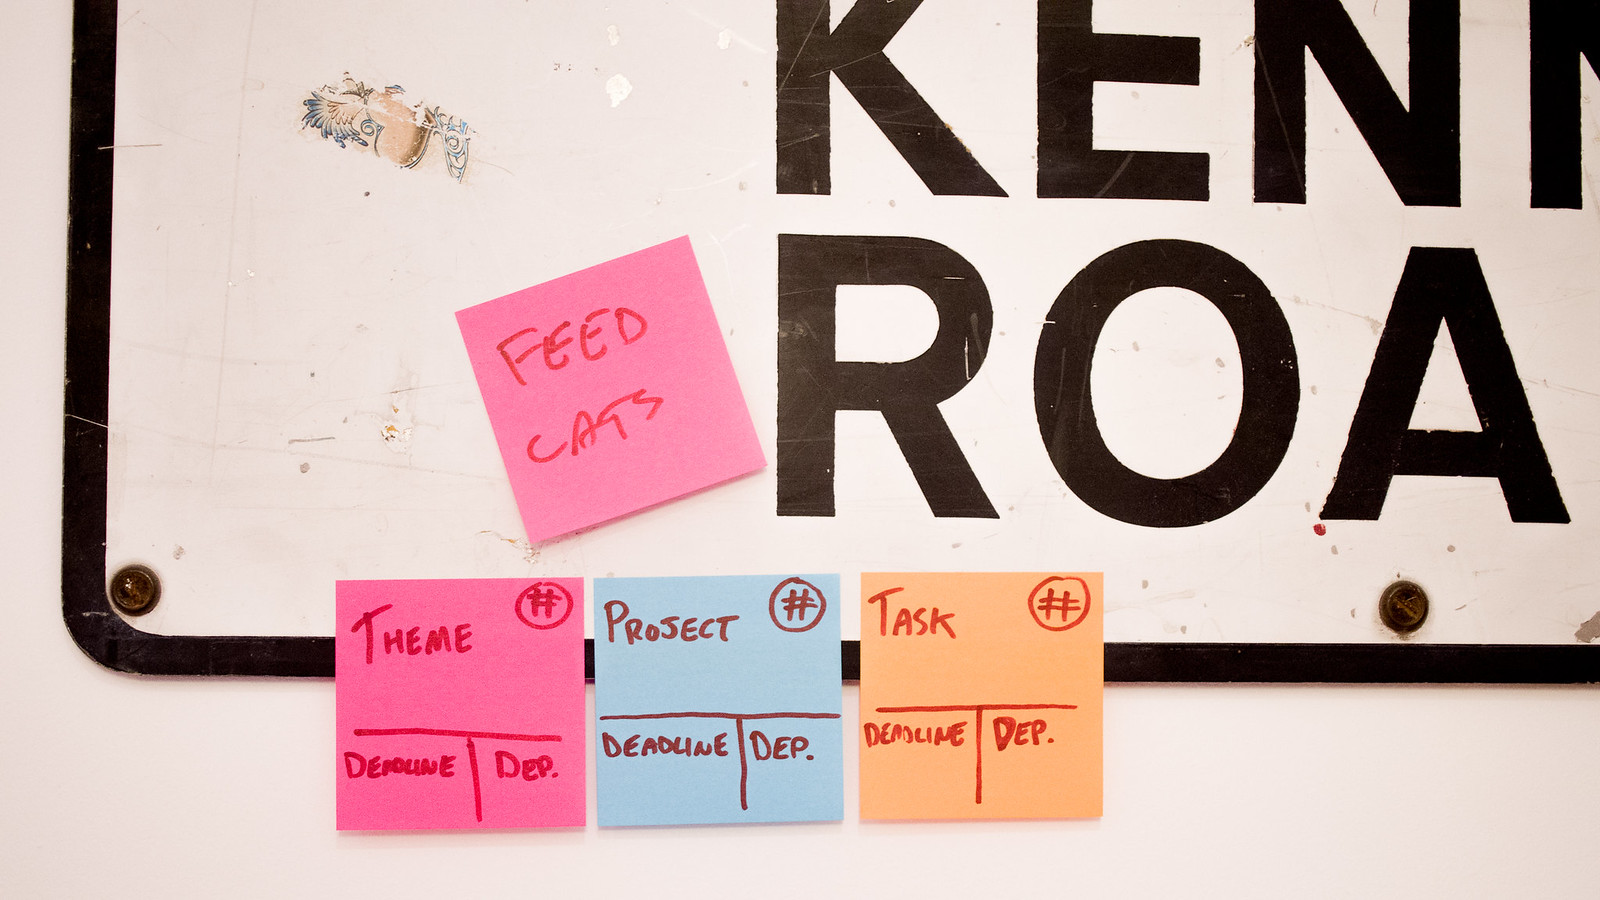 A picture of post it notes on a wall - three technical ones in a neat line, then one reminder to feed the cats in pride of place